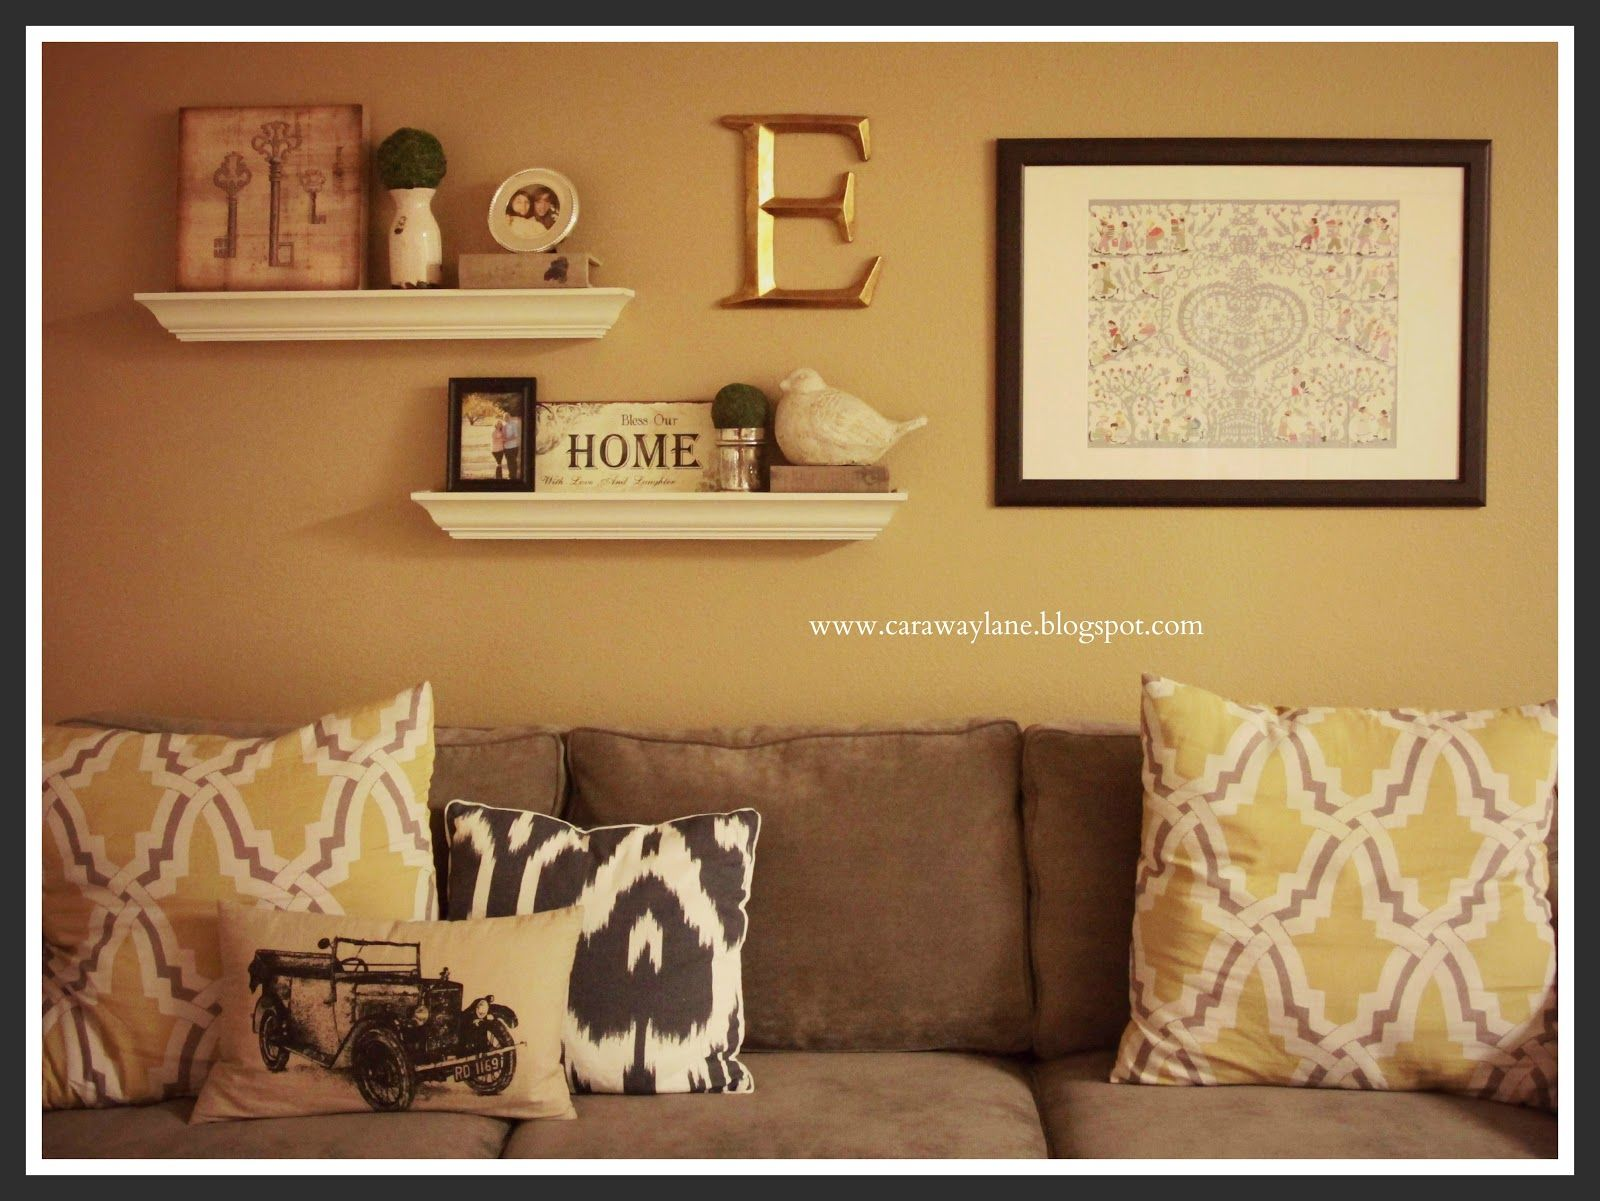 Wall Decor Ideas Behind Couch : Decorate over a sofa above the couch wall decor future